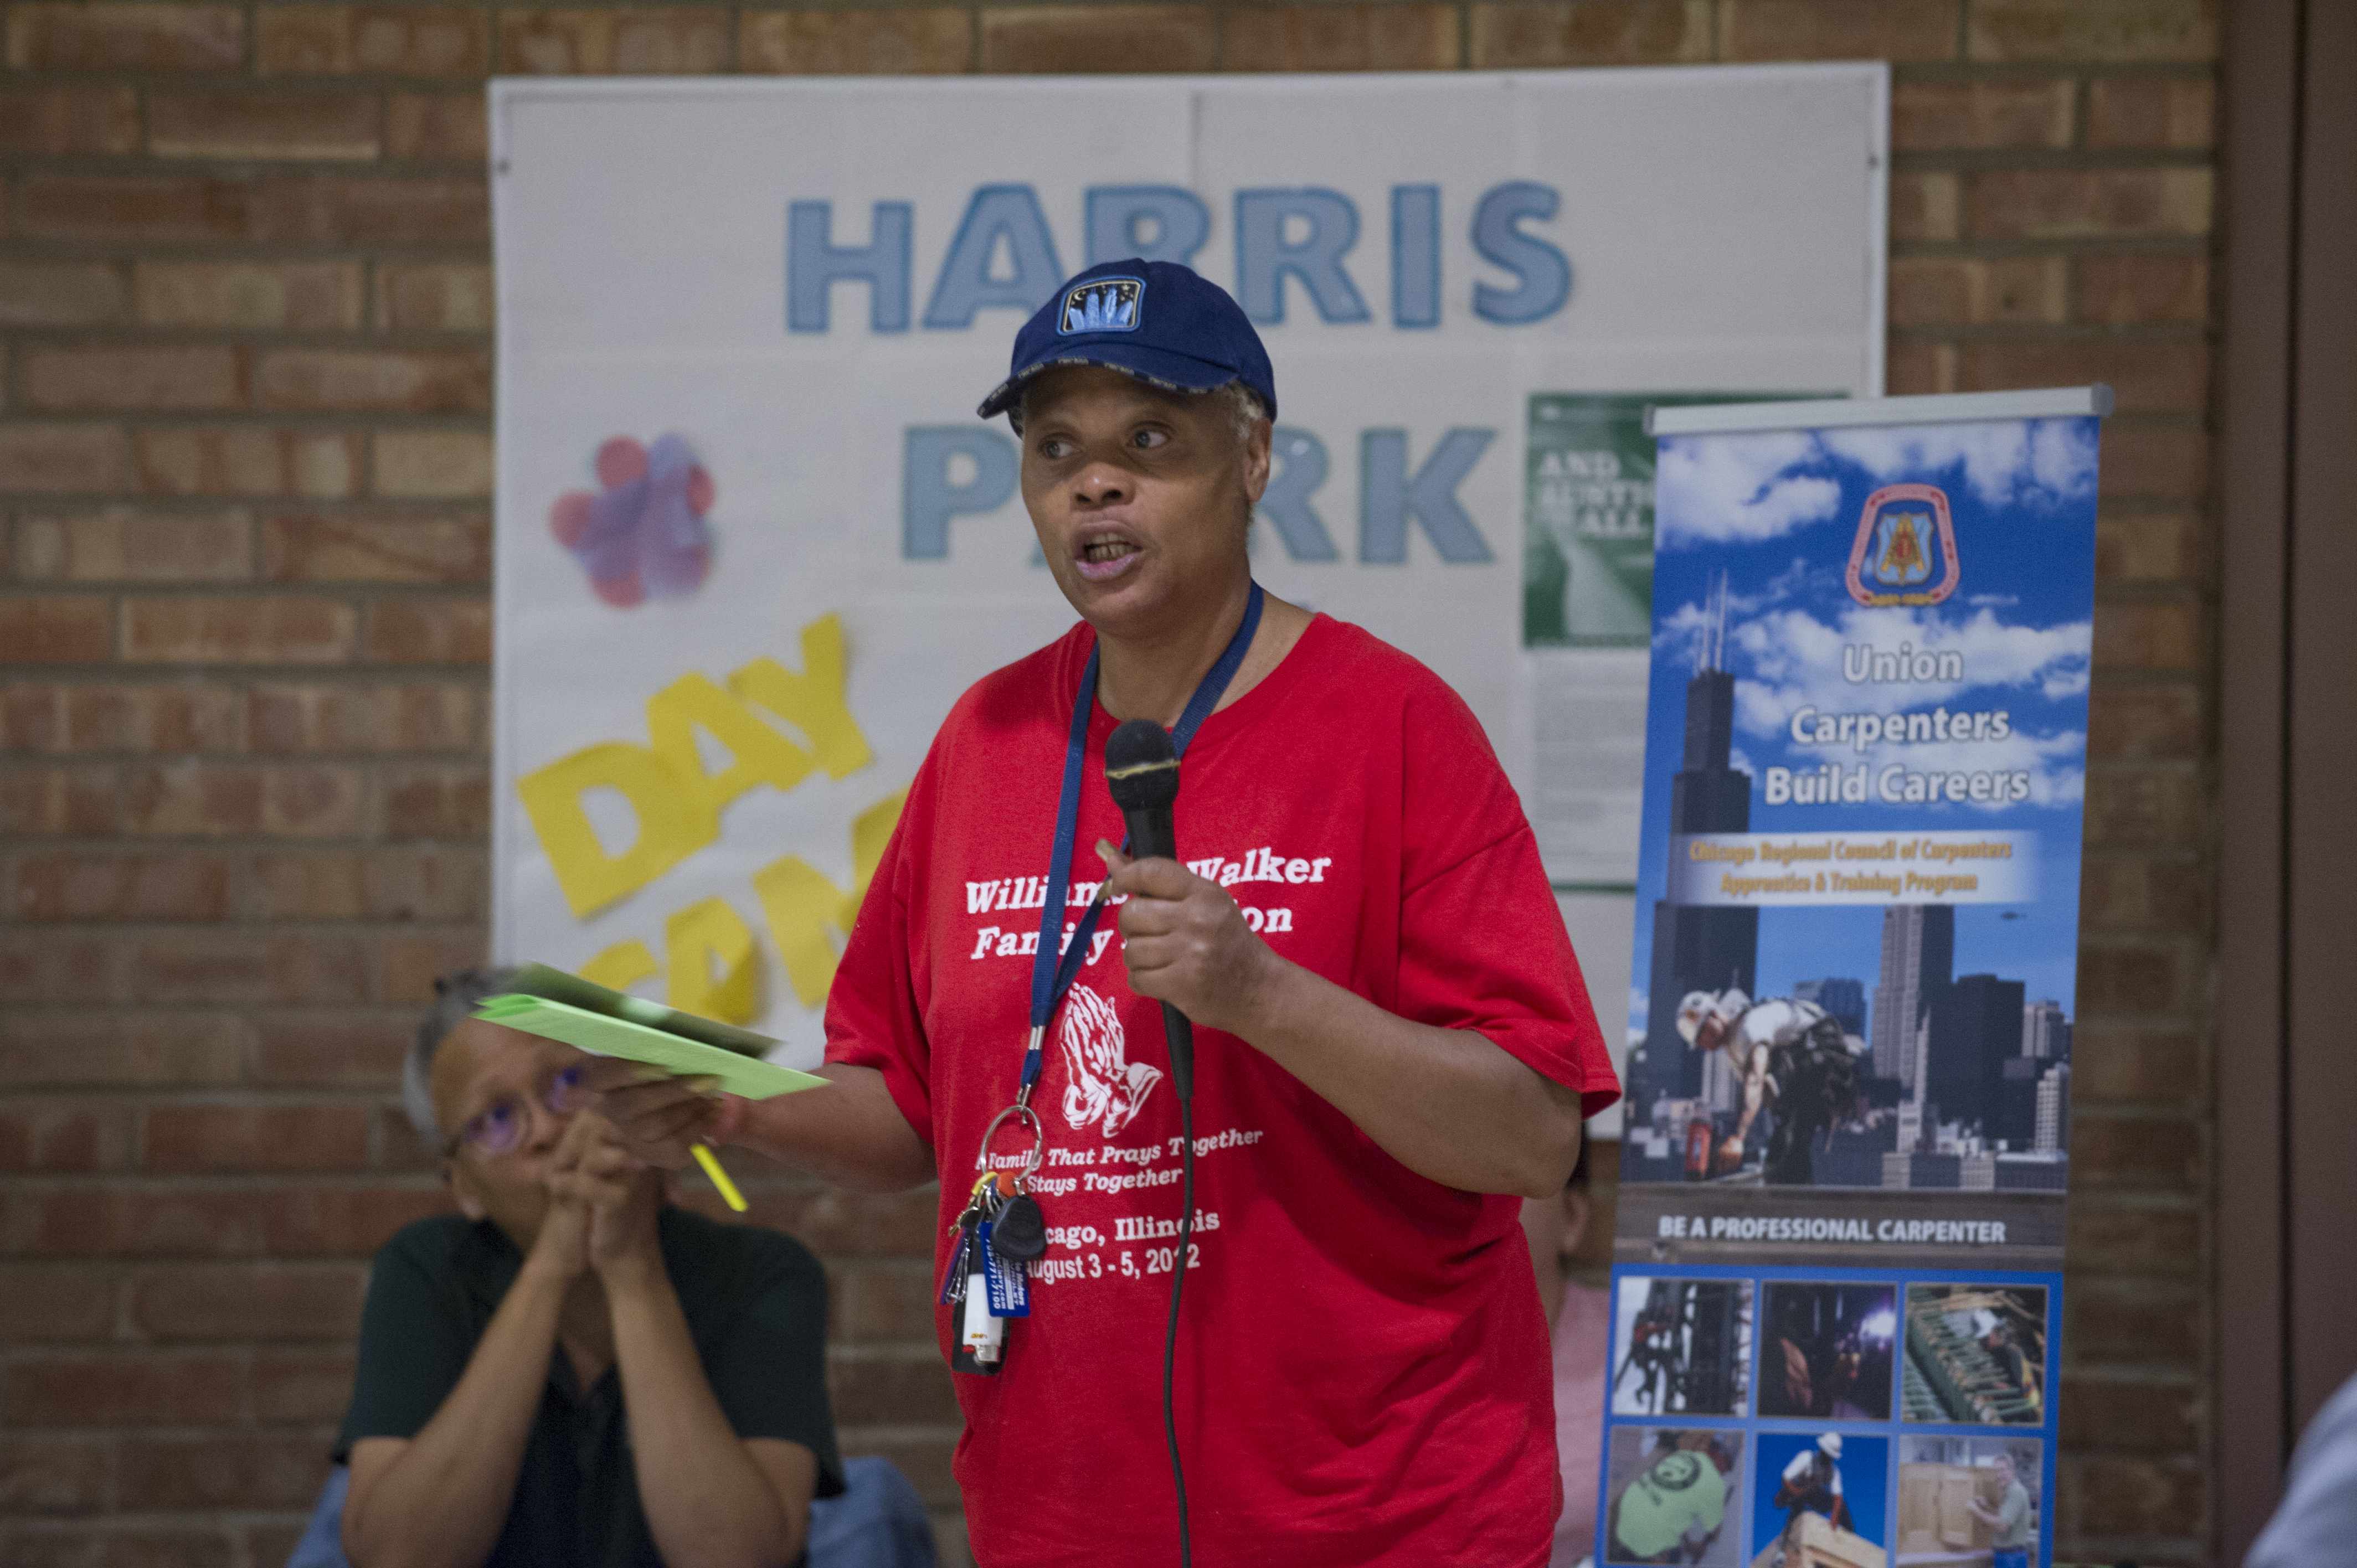 Obama Library South Side CBA Coalition Meeting - June 28, 2017 #007